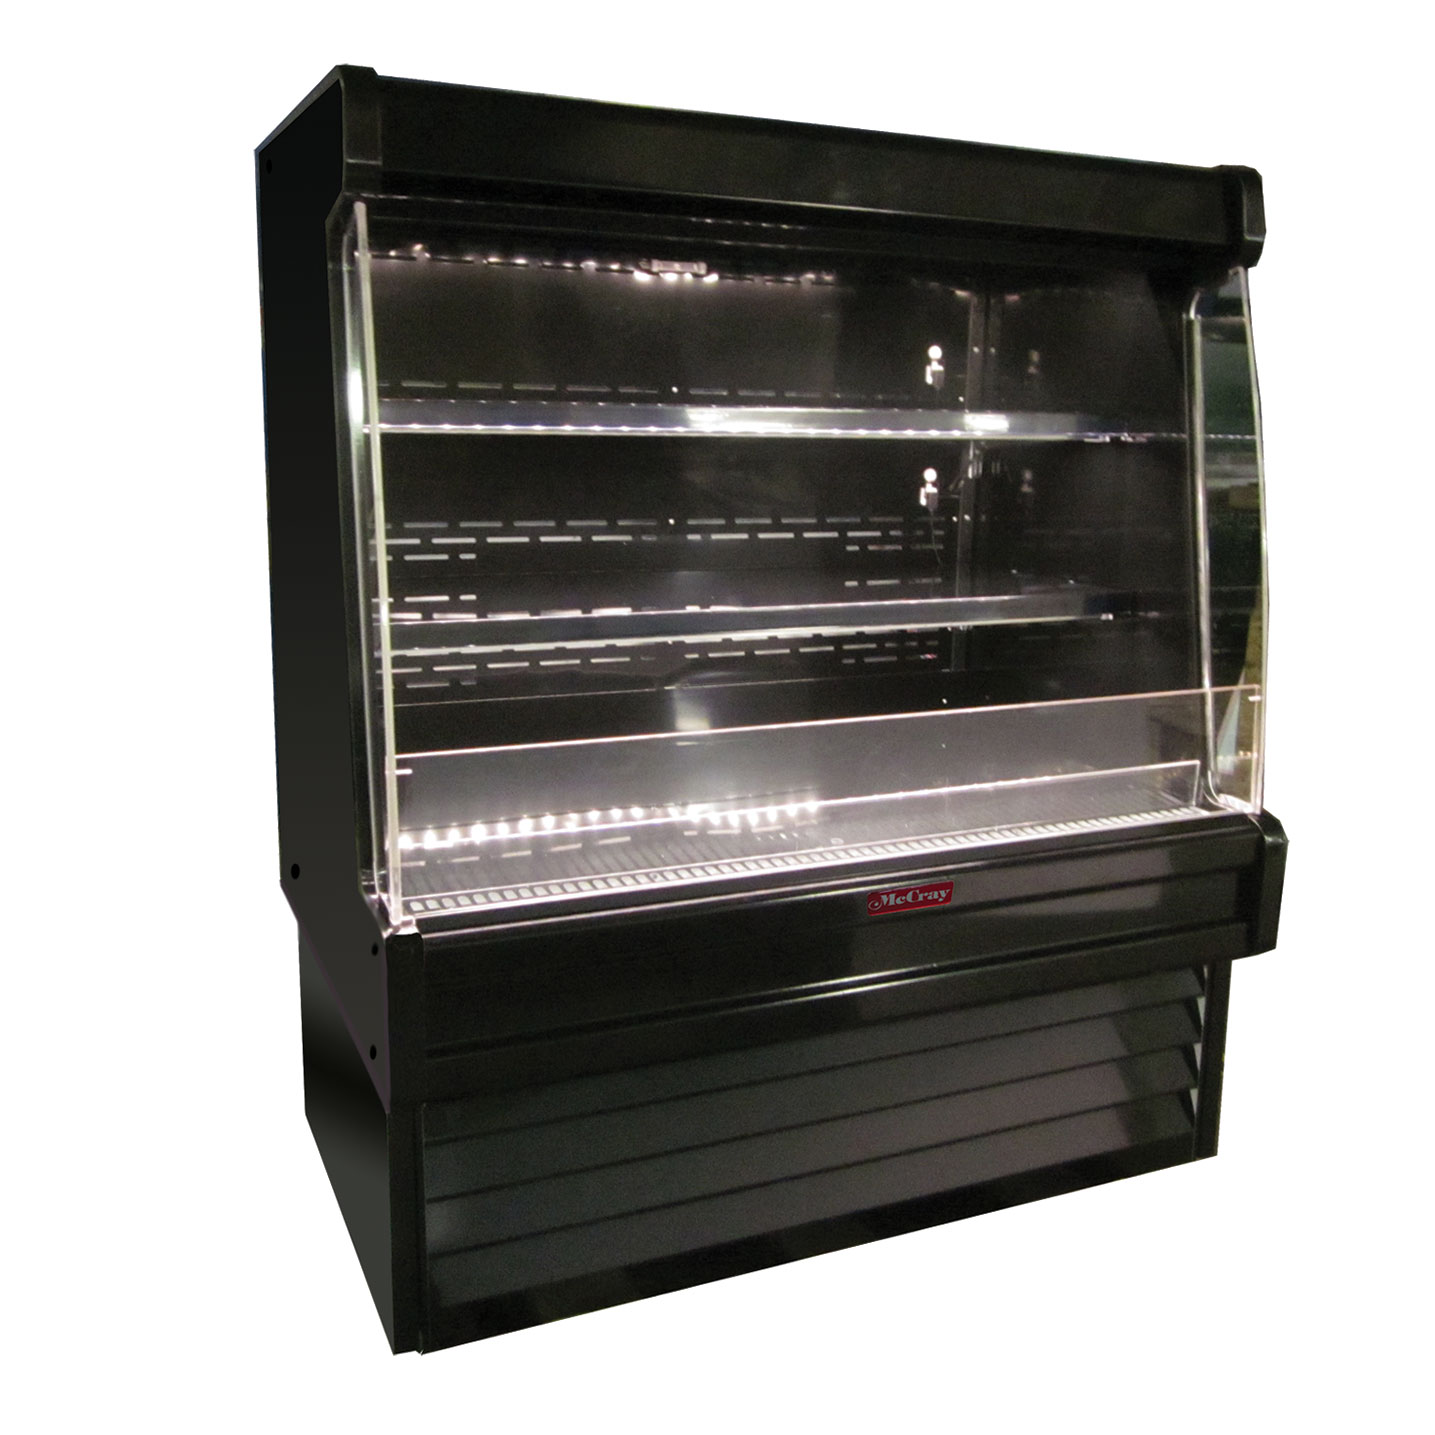 Howard-McCray SC-OP35E-5L-S-LED display case, produce